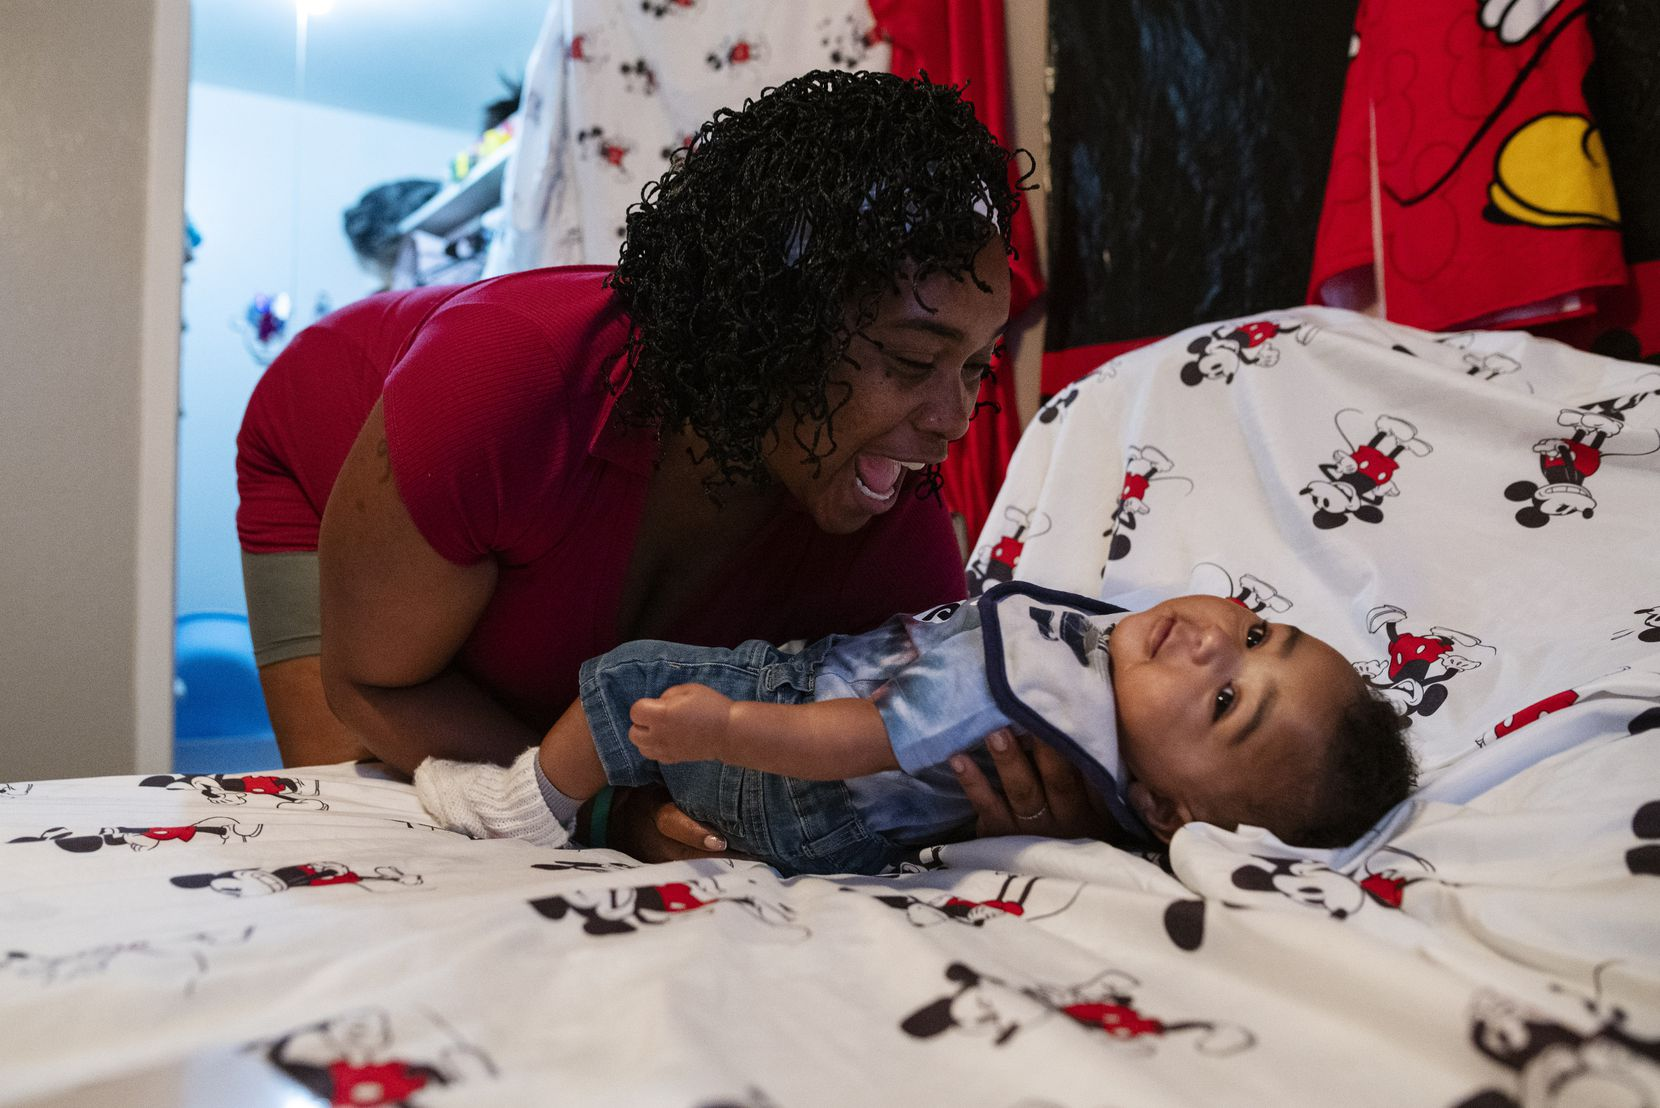 Roshell Johnson, 36, interacts with her baby Masiah Johnson after he woke up from a nap at her home in Dallas, Johnson is a former homeless resident who moved into a new Dallas apartment with her baby this month with the help of Family Gateway, a homelessness and housing service provider.